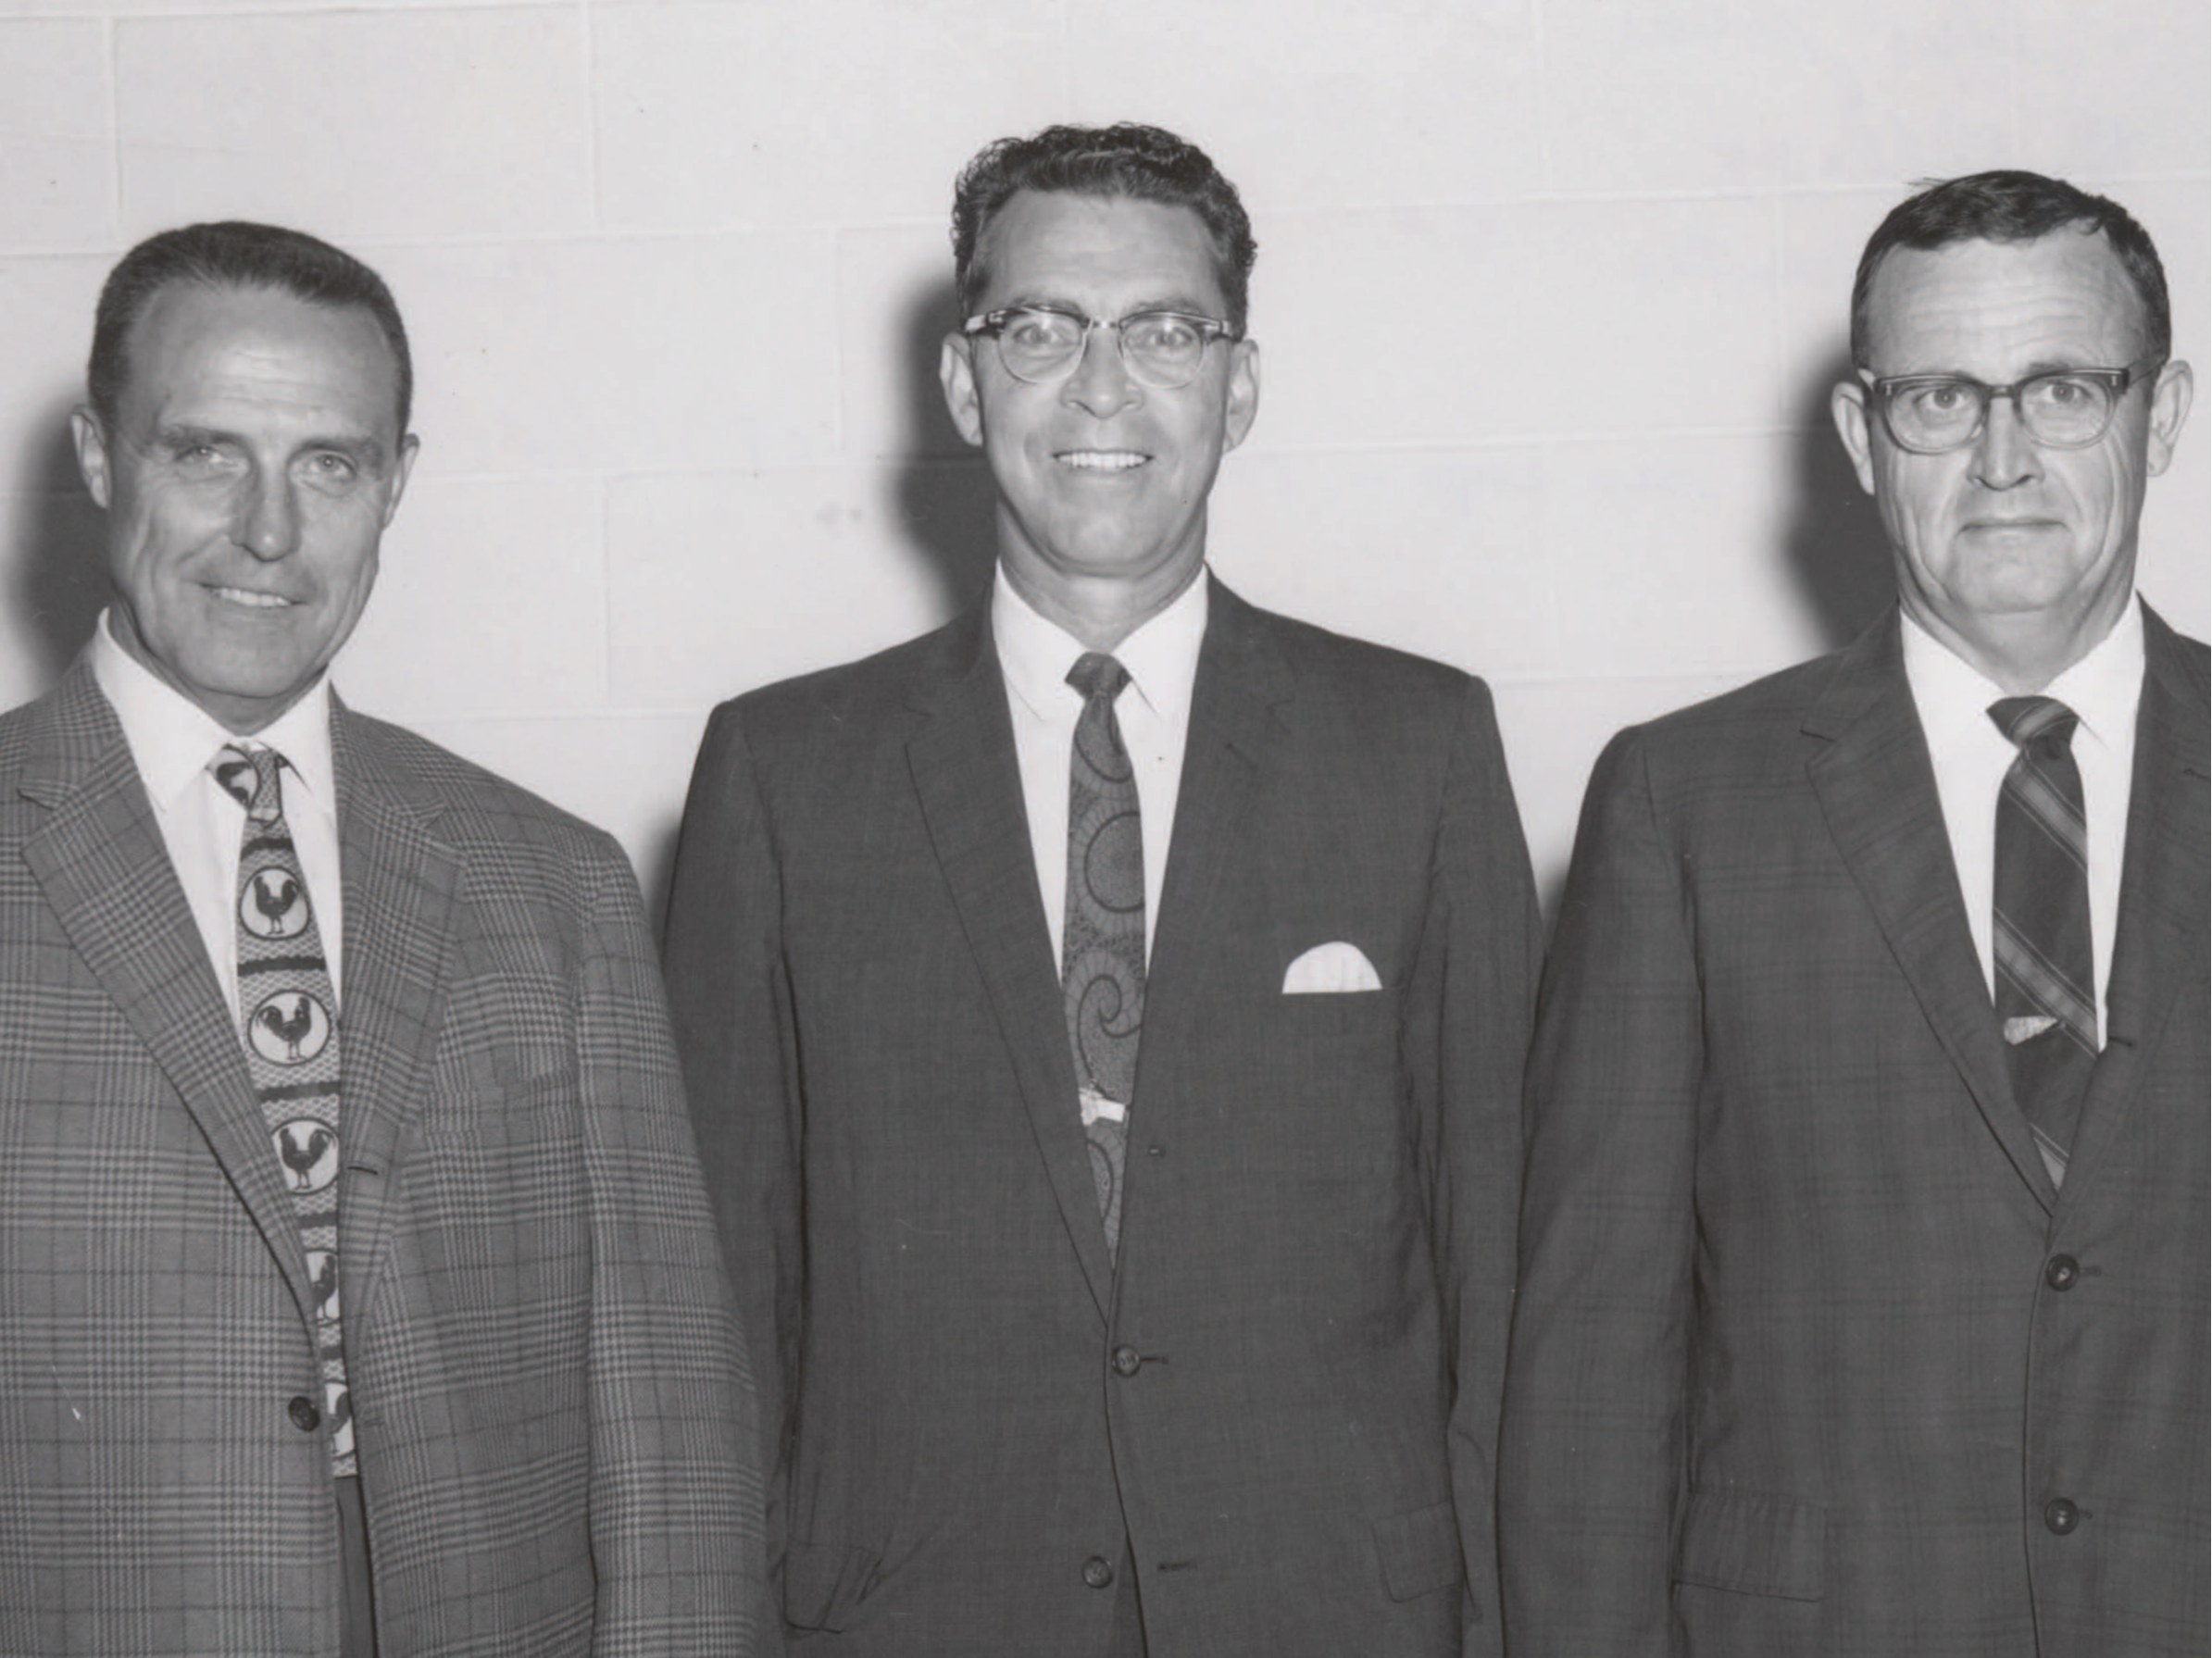 Three managers of the first Select Sires cooperatives. (left to right) Wilbur Goeke, NIBCO, Dick Kellogg, COBA and Marshall Carpenter, KABA